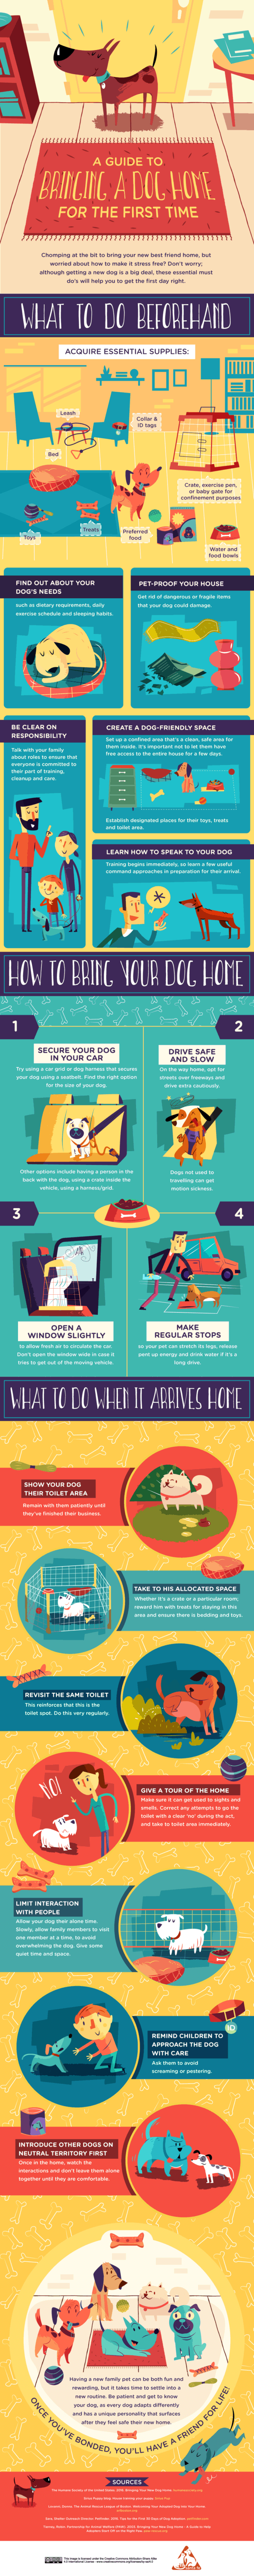 A Guide To Bringing Home Your New Dog